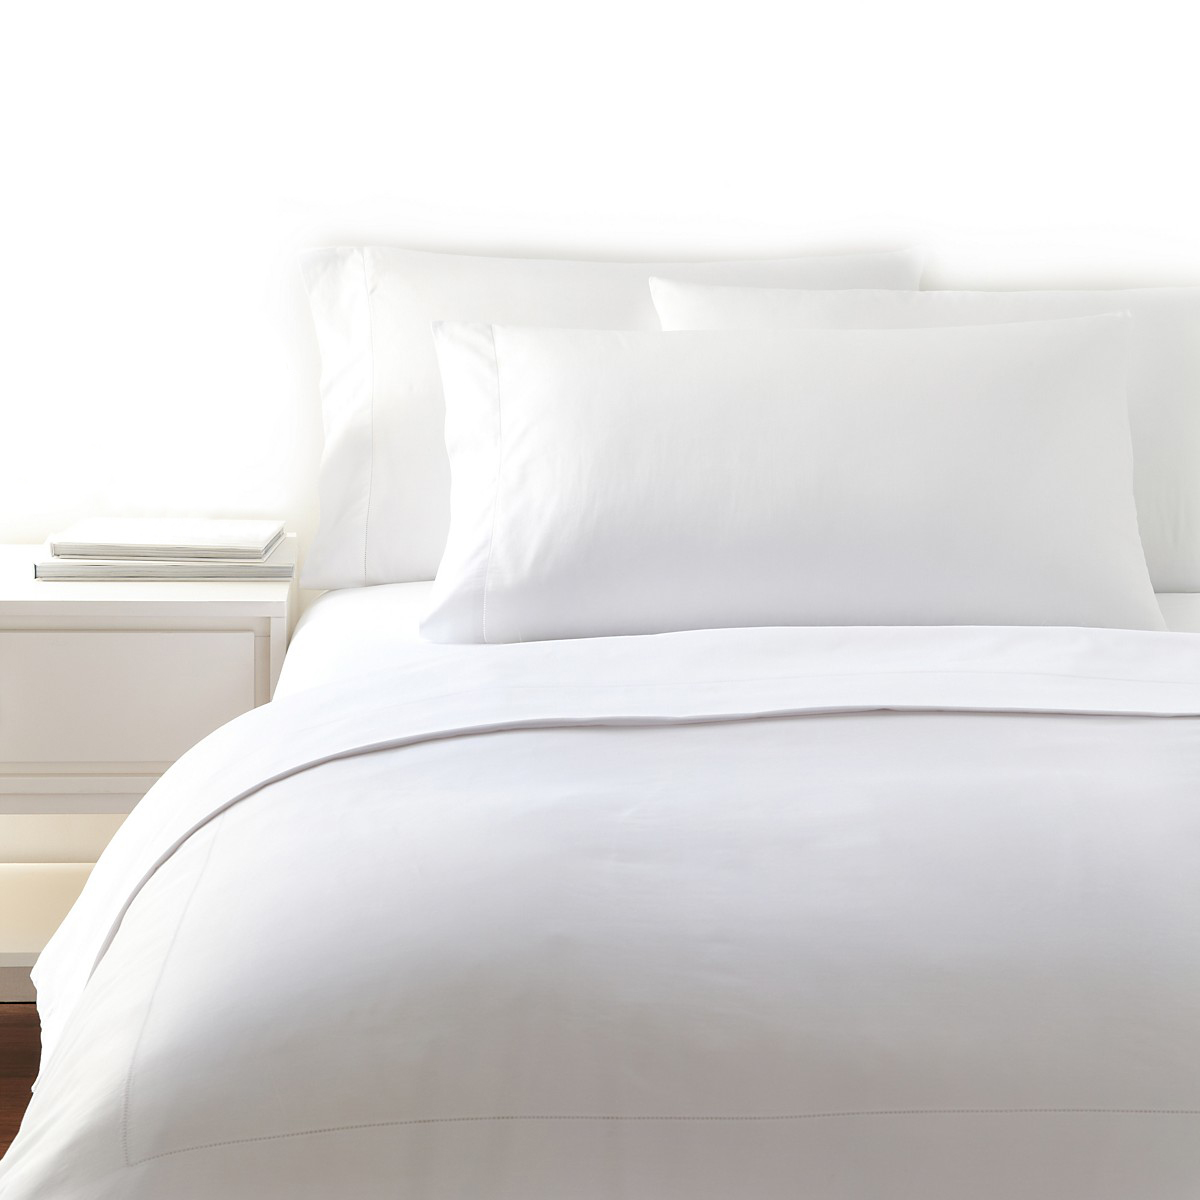 white bedding with no plant.jpg